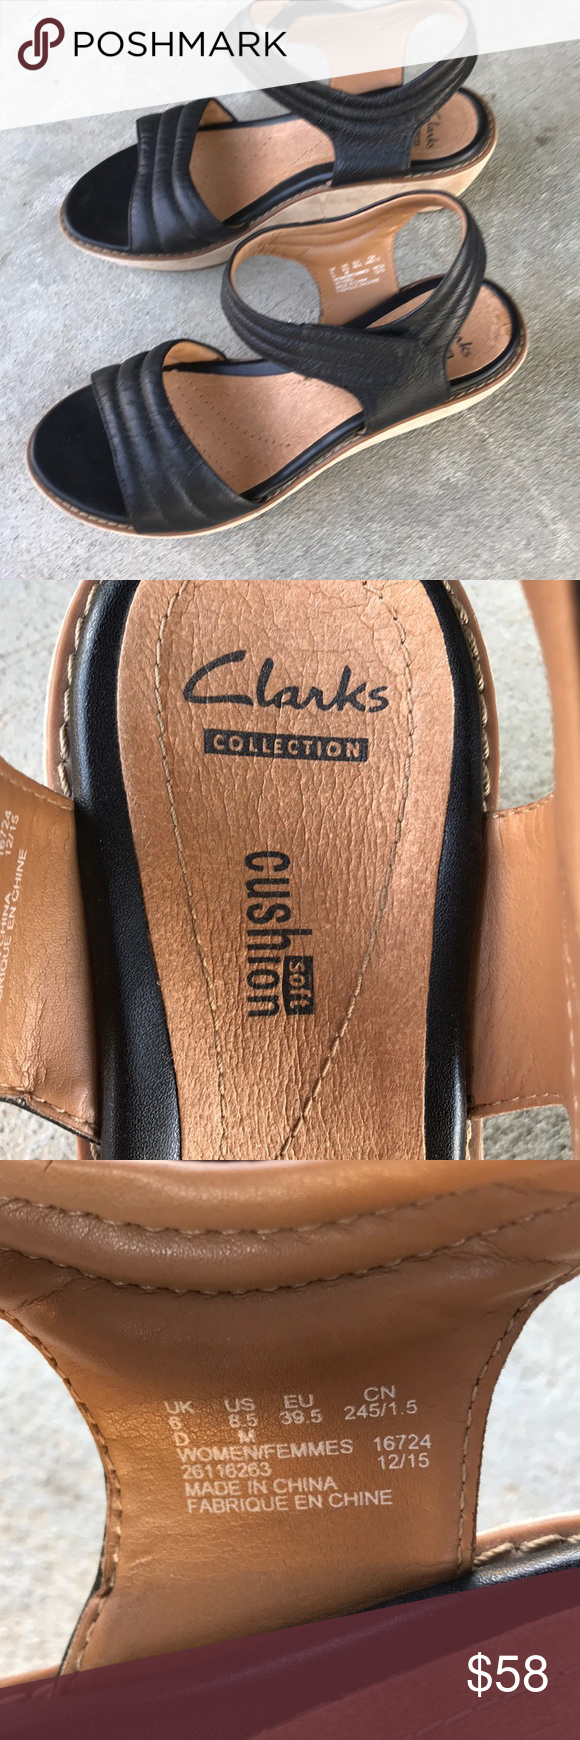 Clarks Collection Soft Cushion Wedges 8